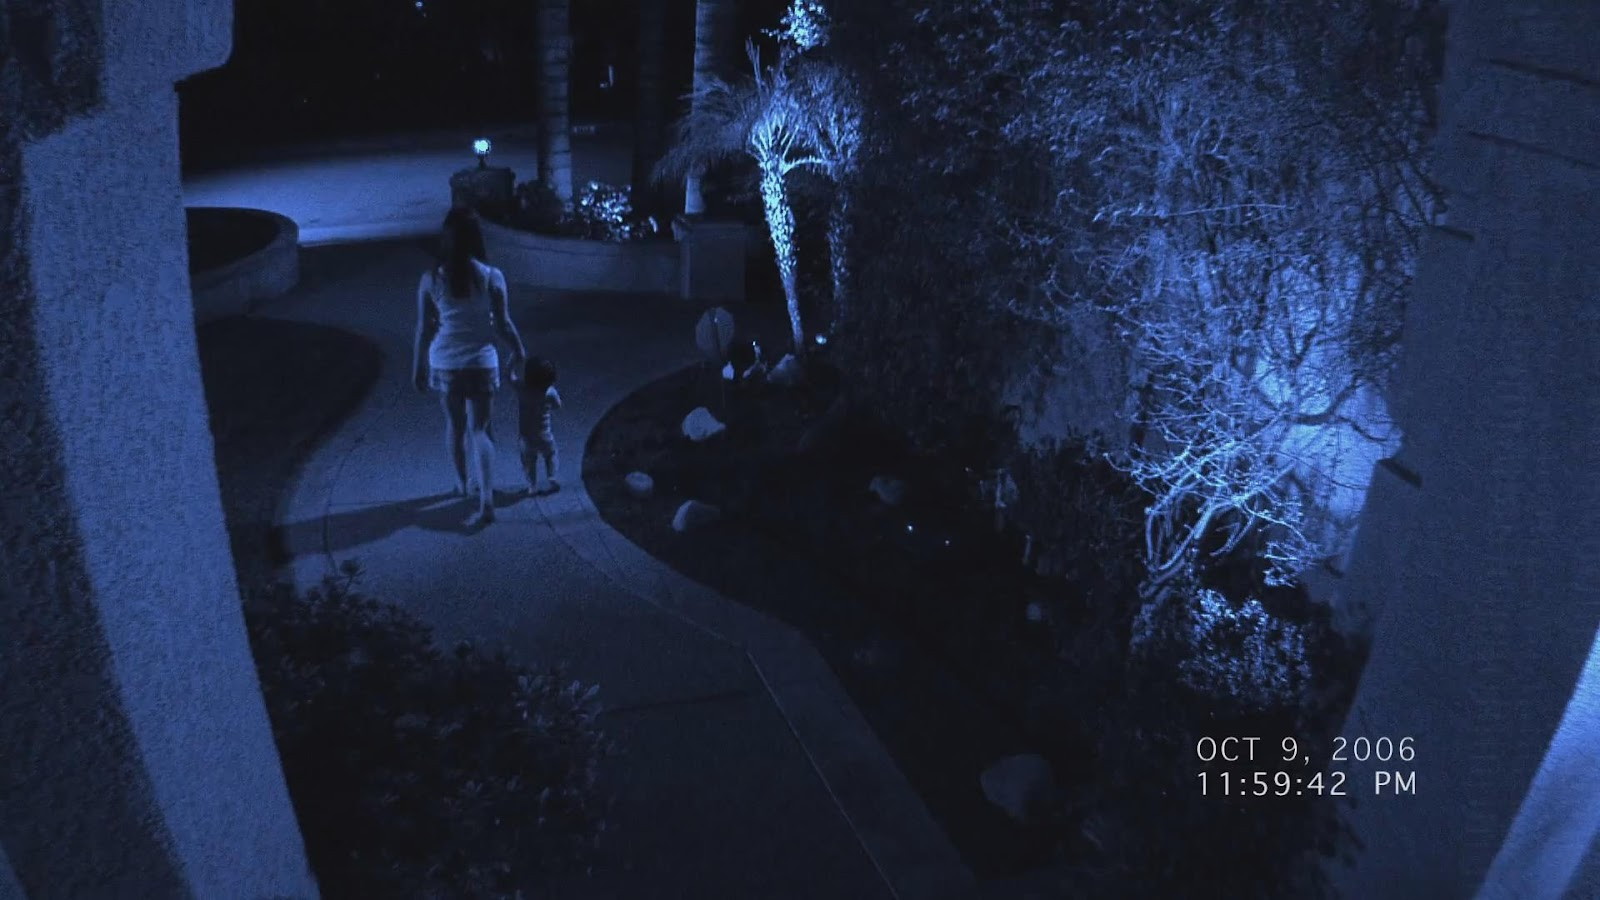 Paranormal+Activity+4+hd+wallpapers+%283%29 Paranormal Activity 4 Fragmanı İzle